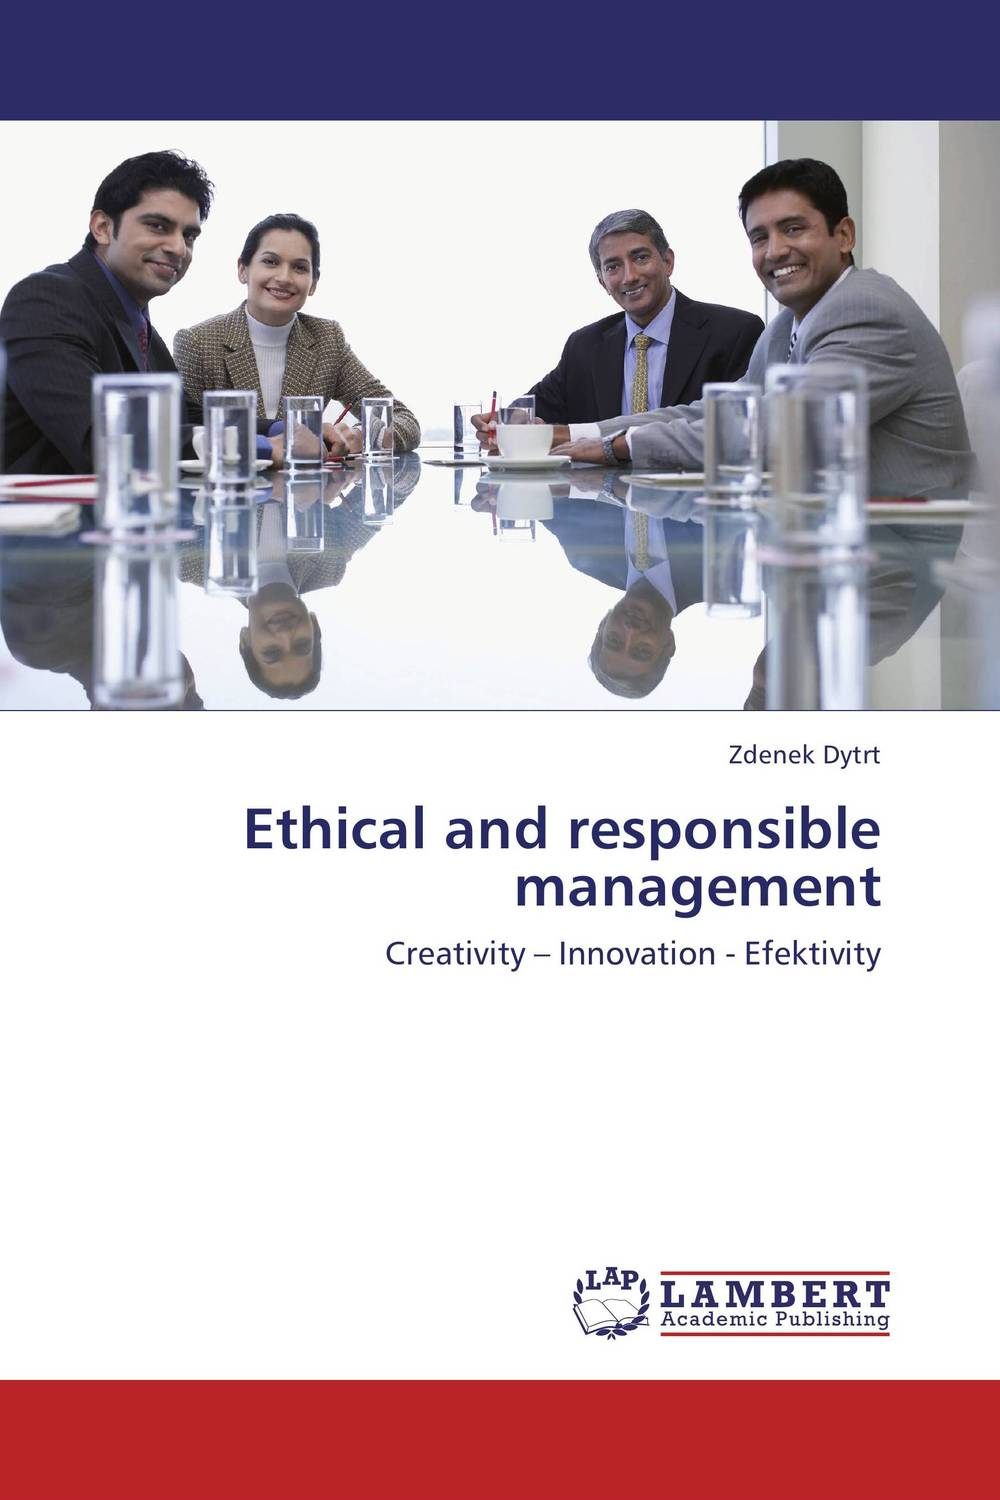 Ethical and responsible management ethical and responsible management